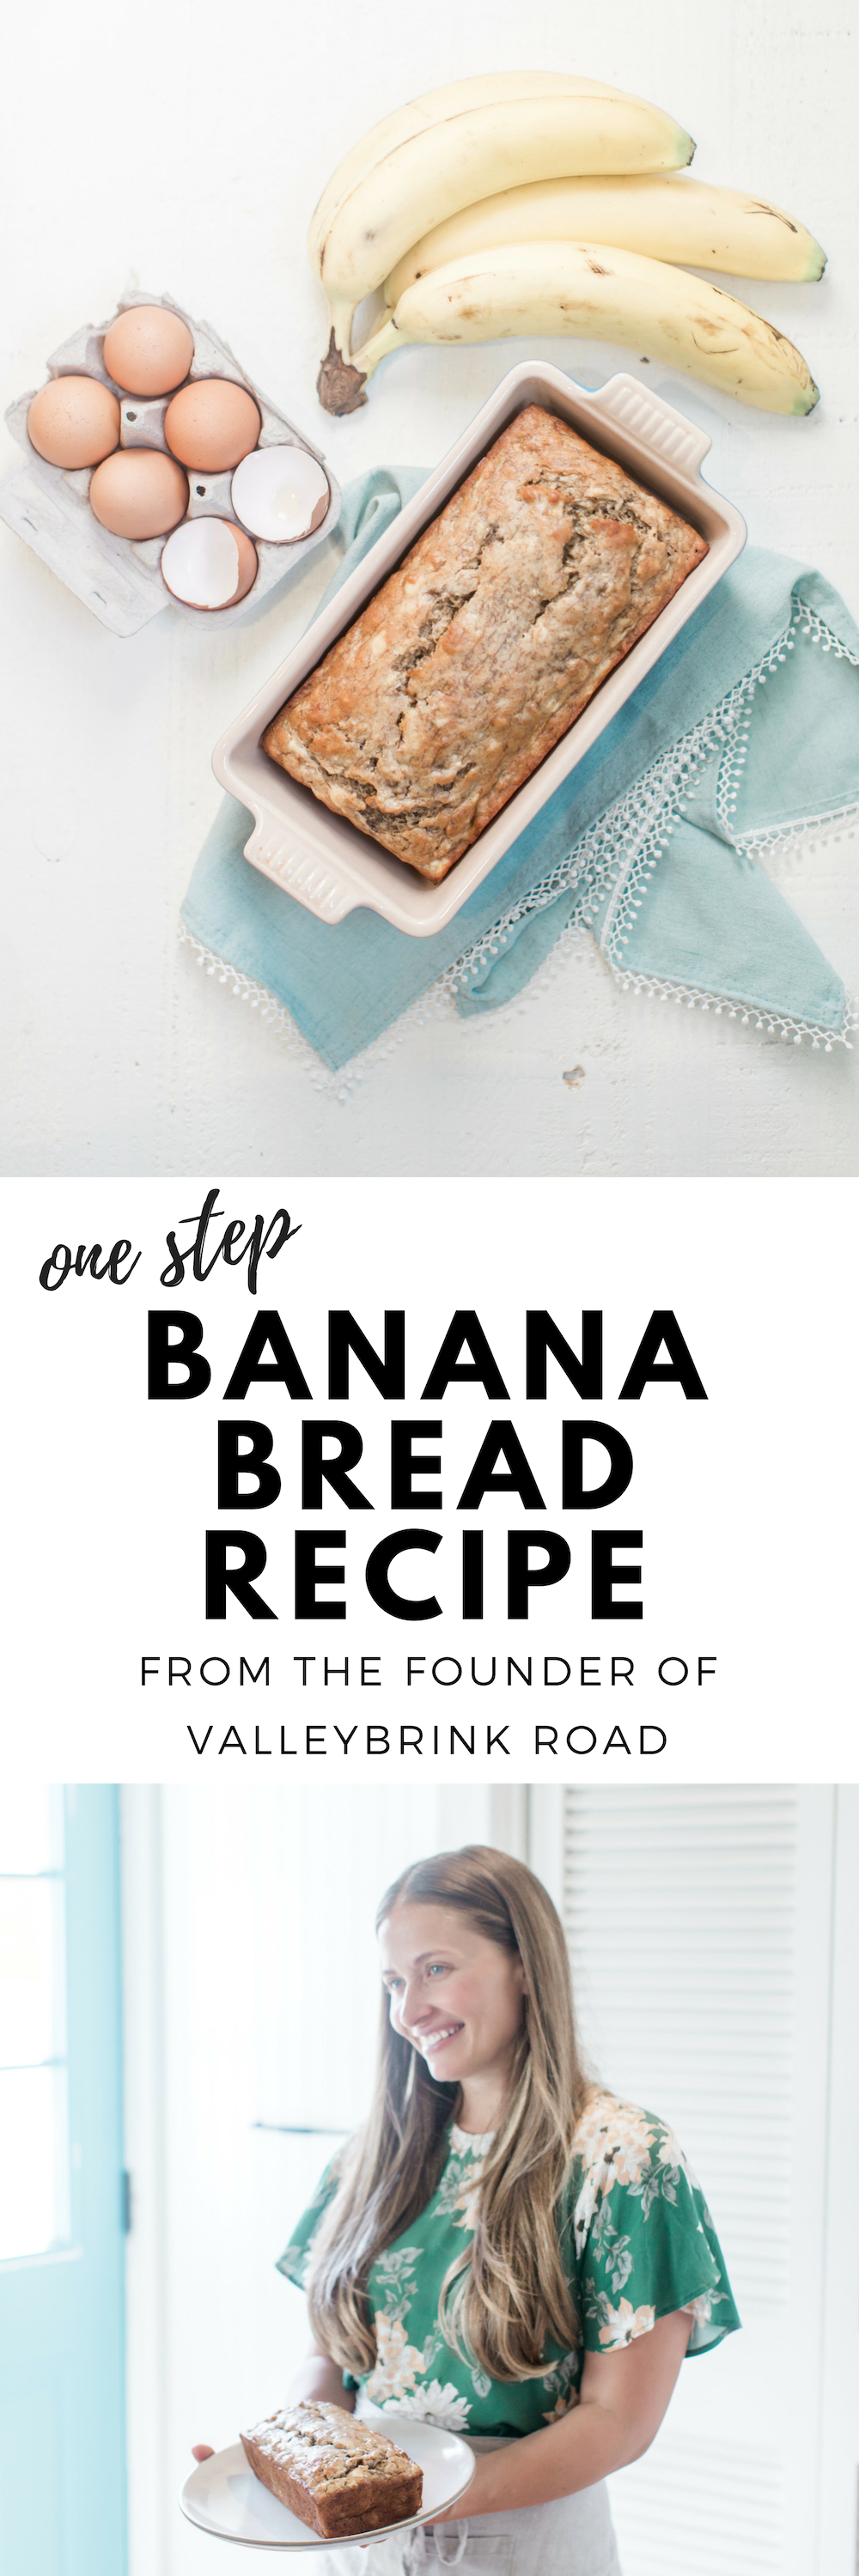 one step banana bread recipe from the founder of Valleybrink Road